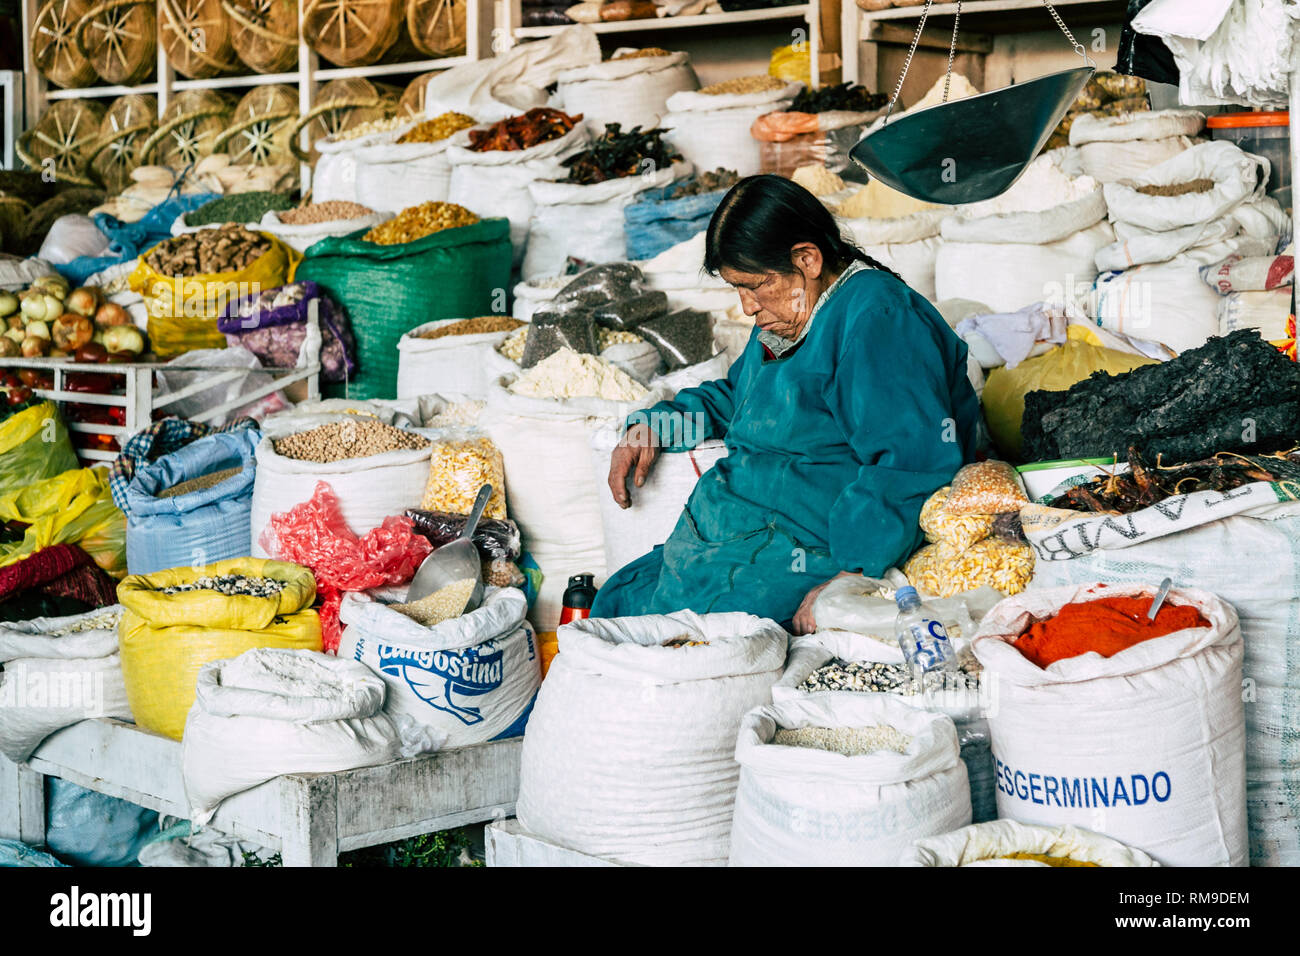 An elderly Peruvian woman sleeping sitting amongst sacks of grains and other produce that she is selling in the local market of Cusco, Peru. - Stock Image